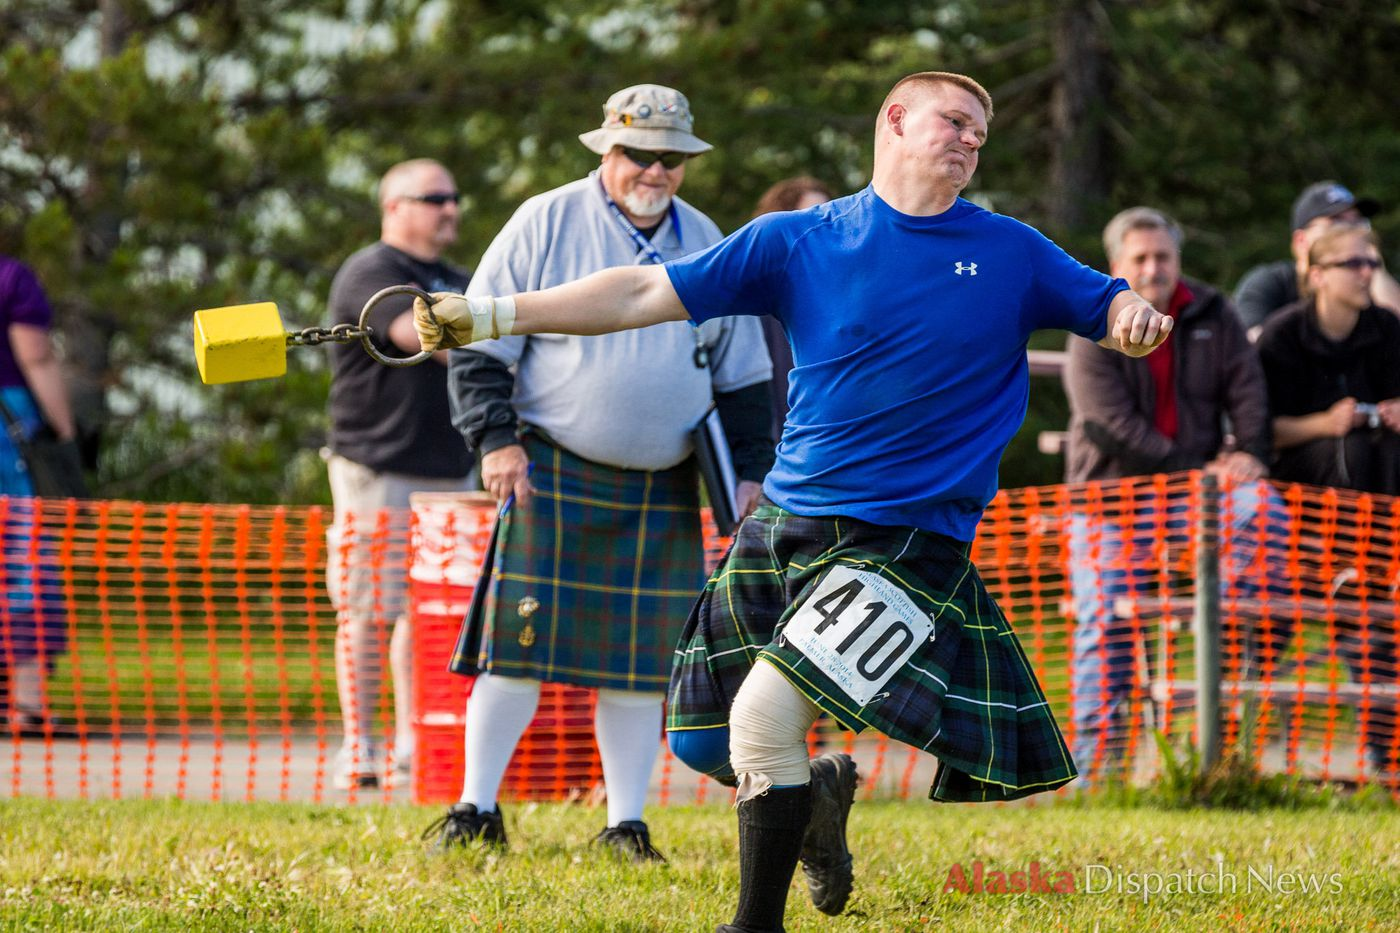 LOREN HOLMES / Alaska Dispatch James Gibson competes in the Men's Amateur A class in the weight throw at the Alaska Scottish Highland Games on Saturday, June 28, 2014 in Palmer.